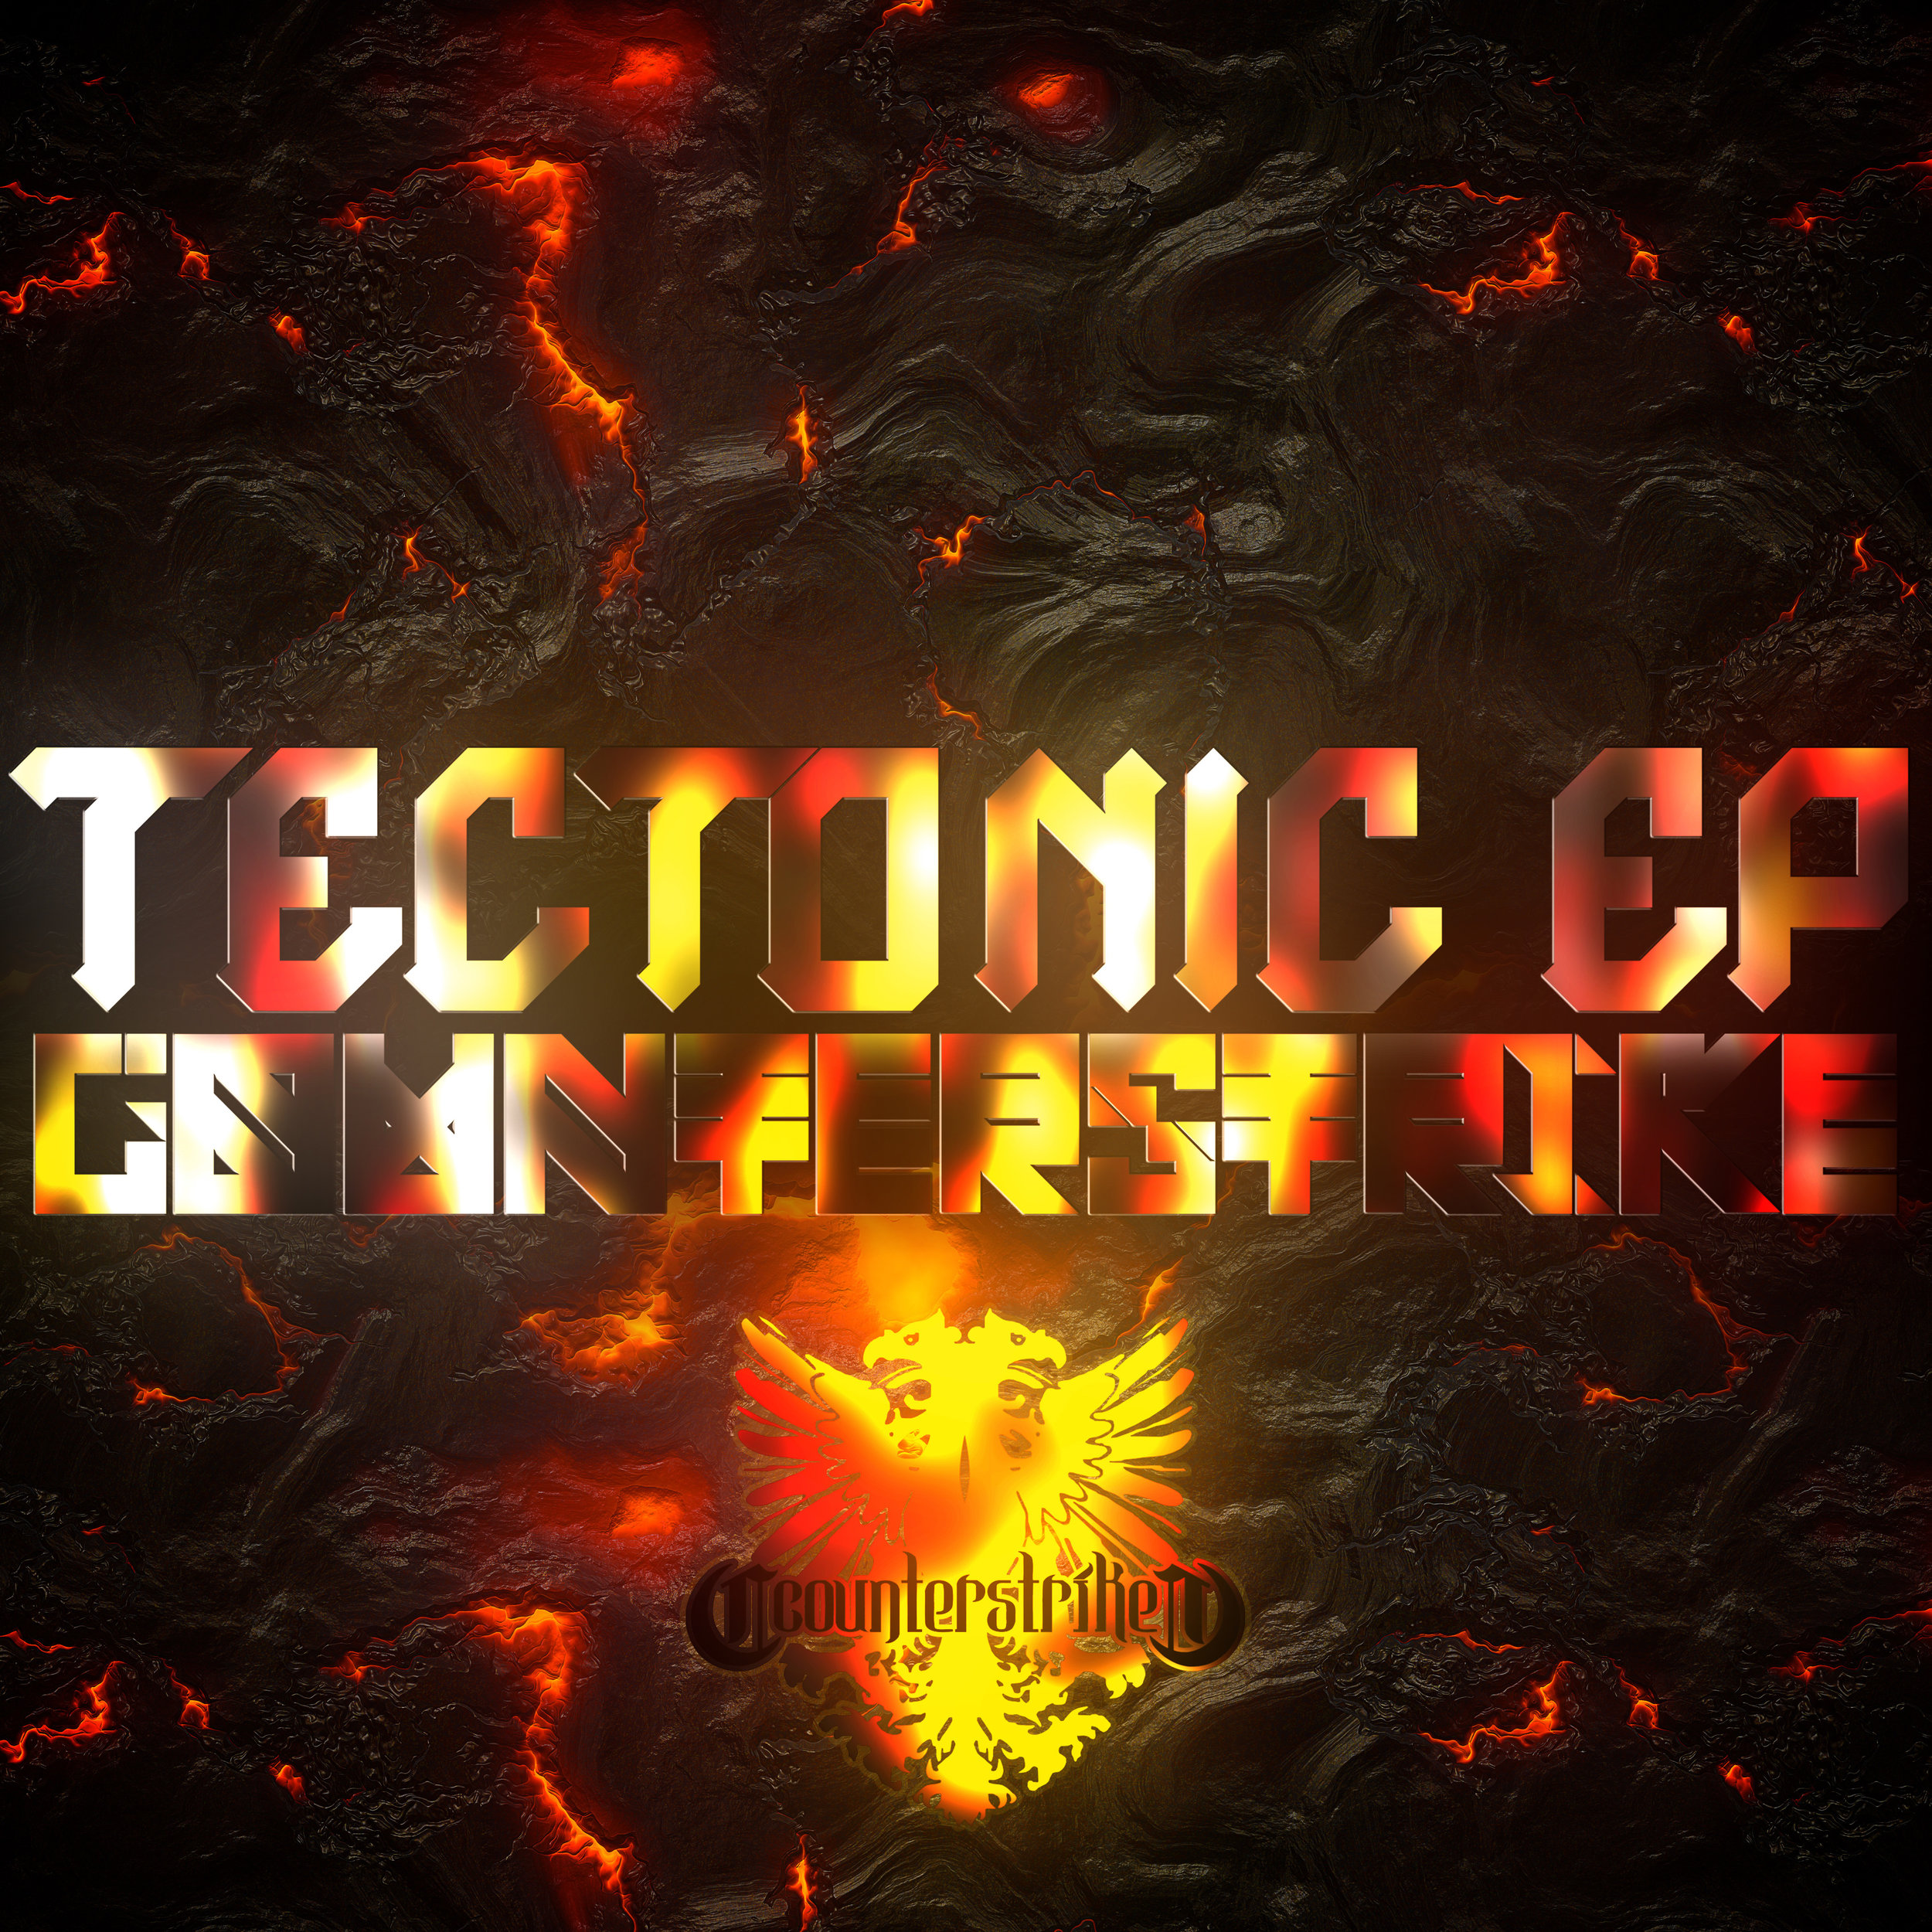 Tectonic-EP_glo_art_02_smaller.jpg